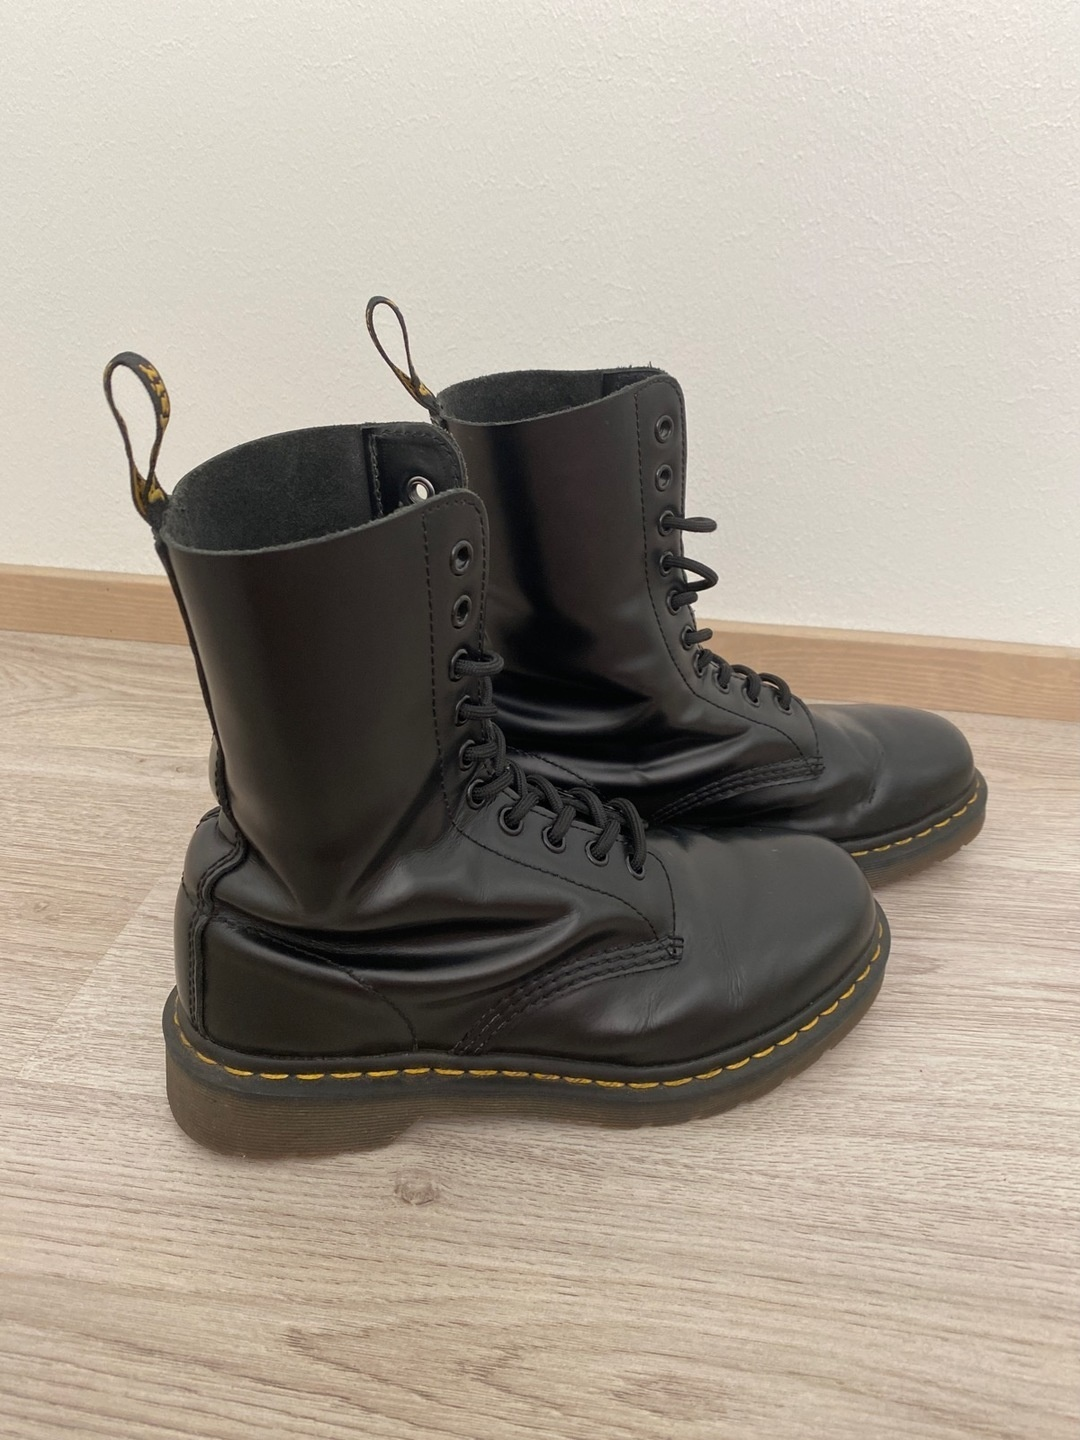 Women's other - DR. MARTENS photo 3